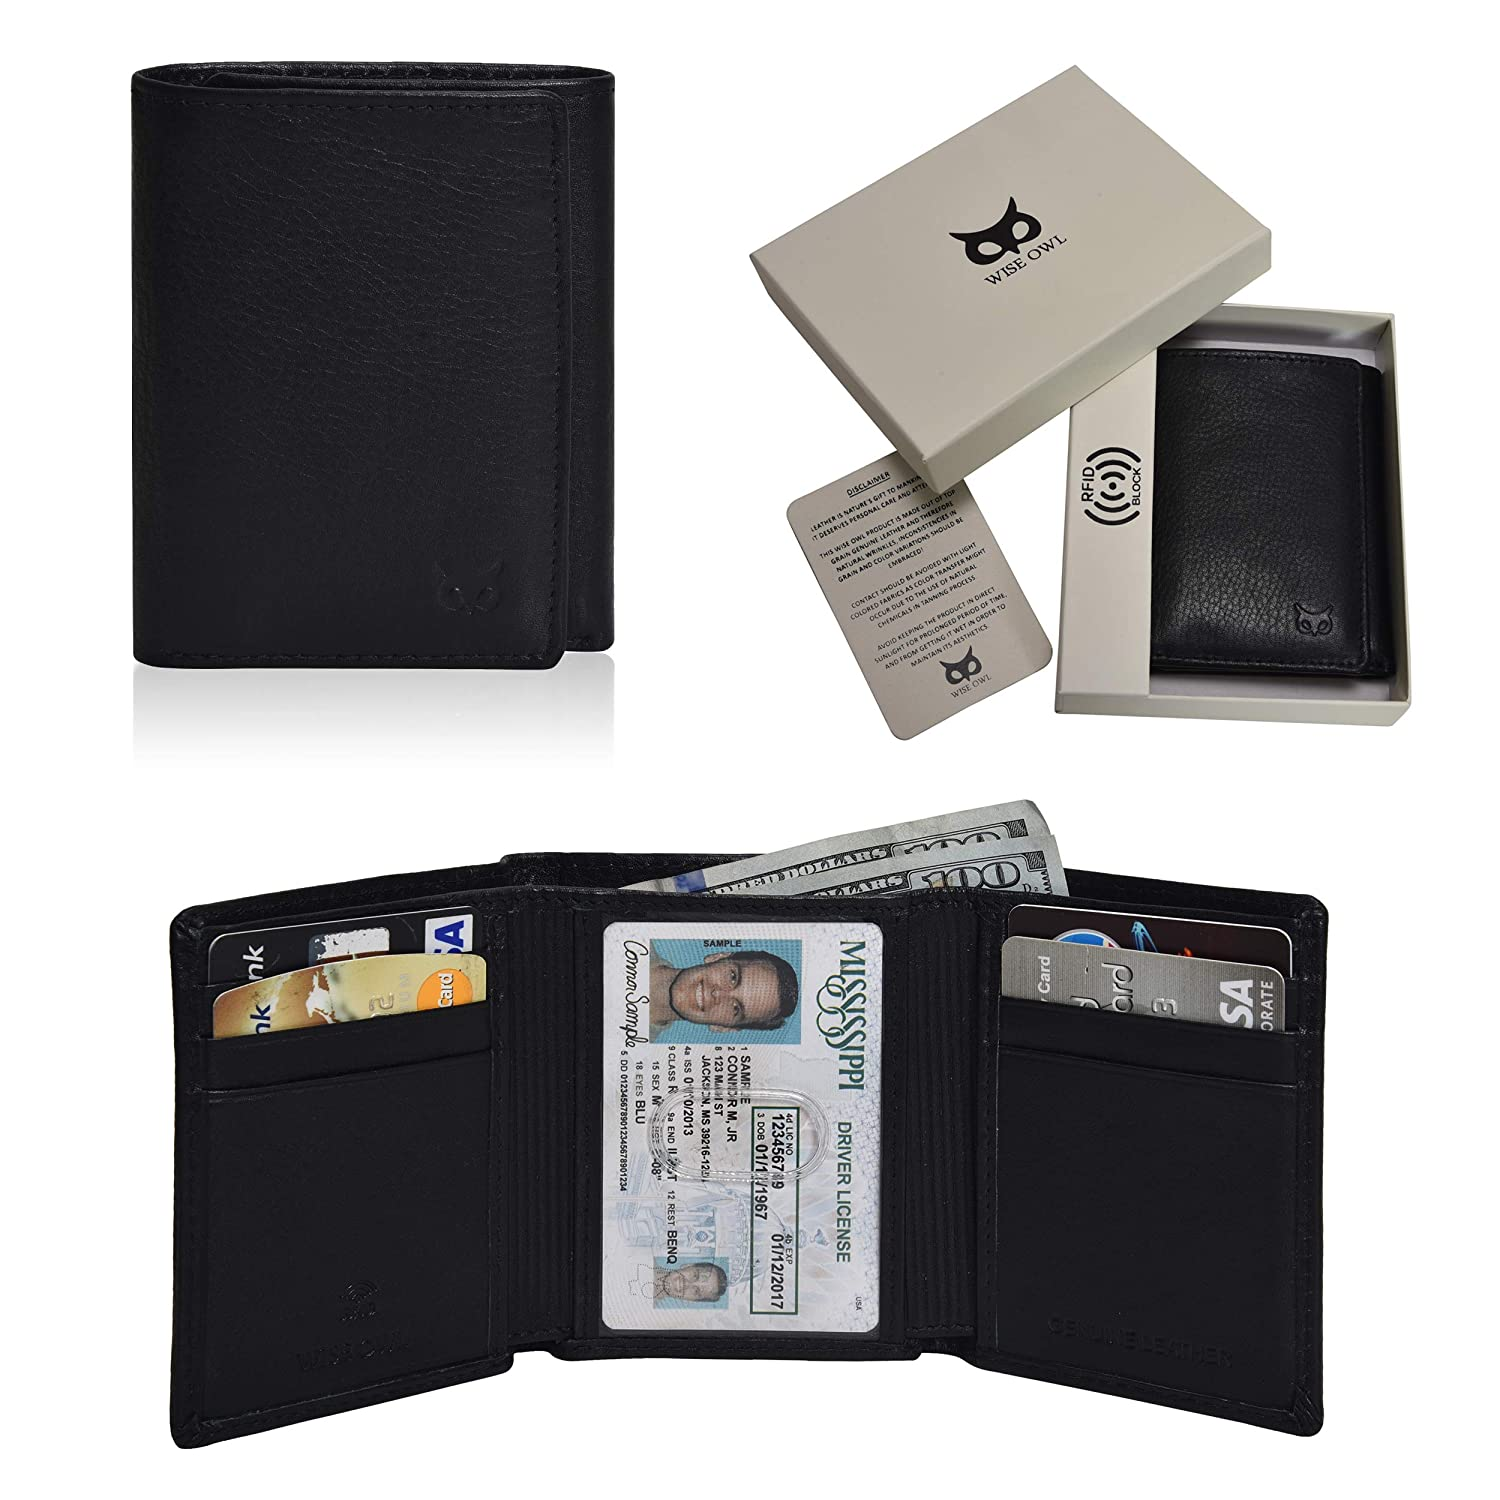 9d6a226b7ae9 Amazon.com: Wise Owl Accessories Men's Trifold Leather Wallets Slim - Wallet  Billfold With ID Window RFID Blocking Box Holiday Gifts Black: Clothing